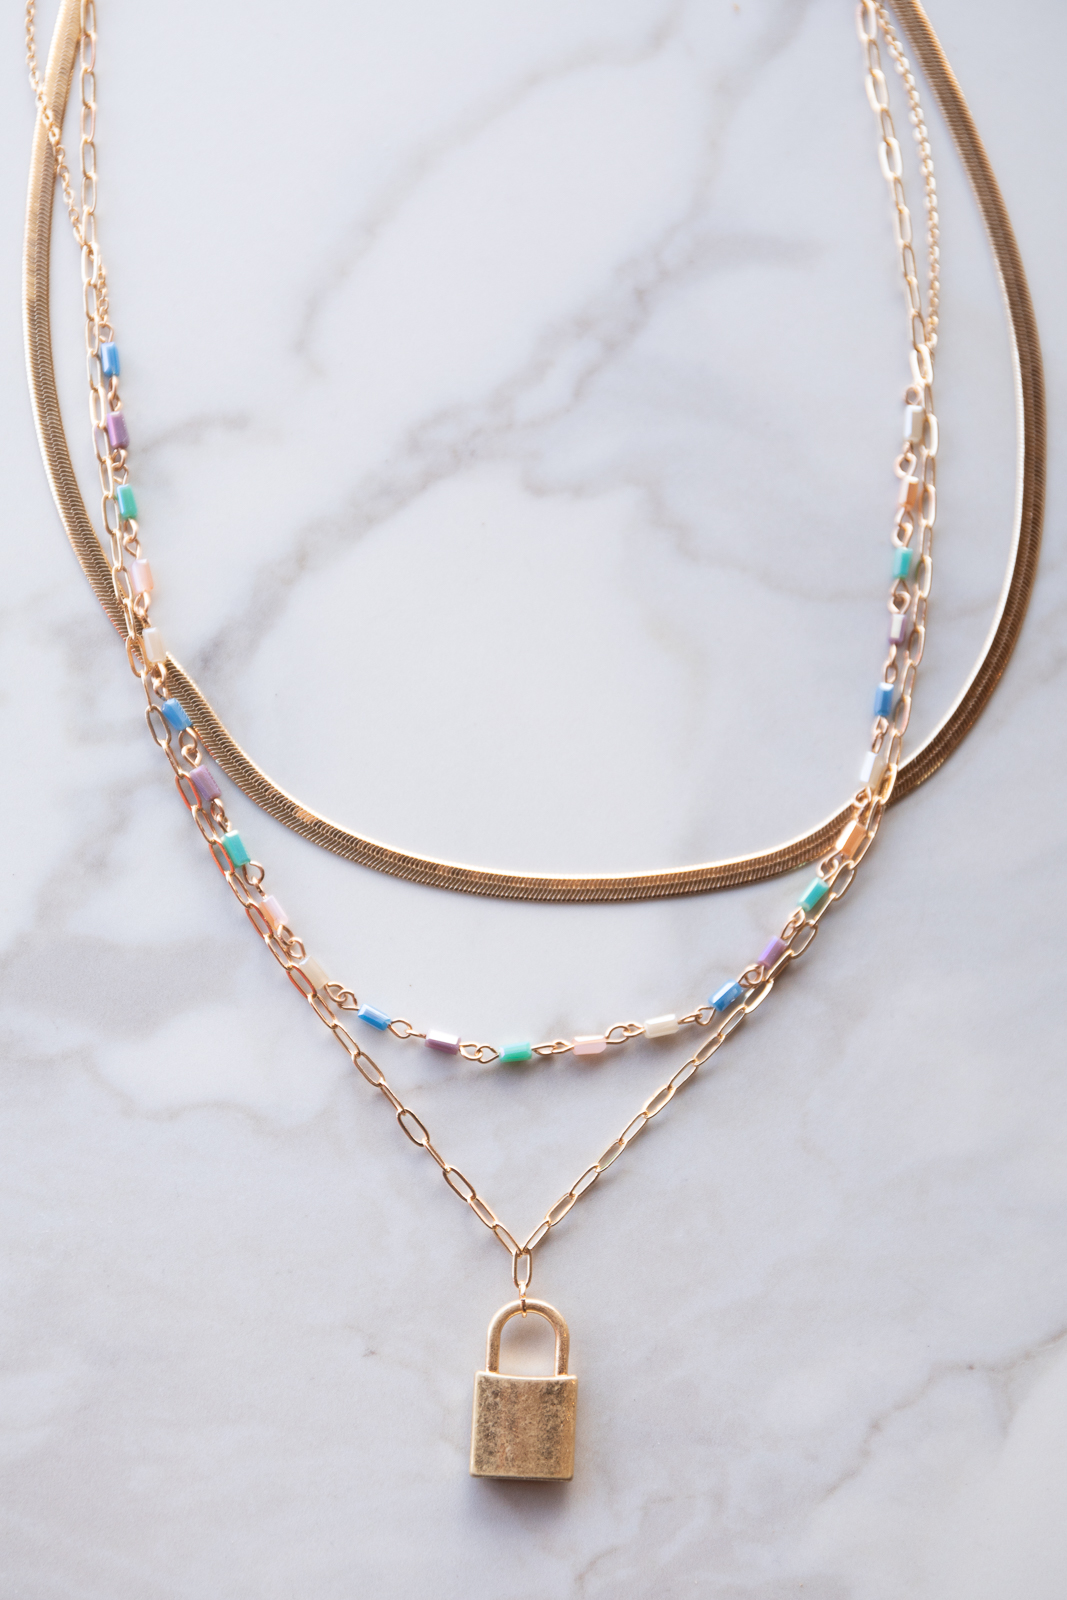 Gold Padlock Pendant 3 Chain Necklace with Multicolor Beads